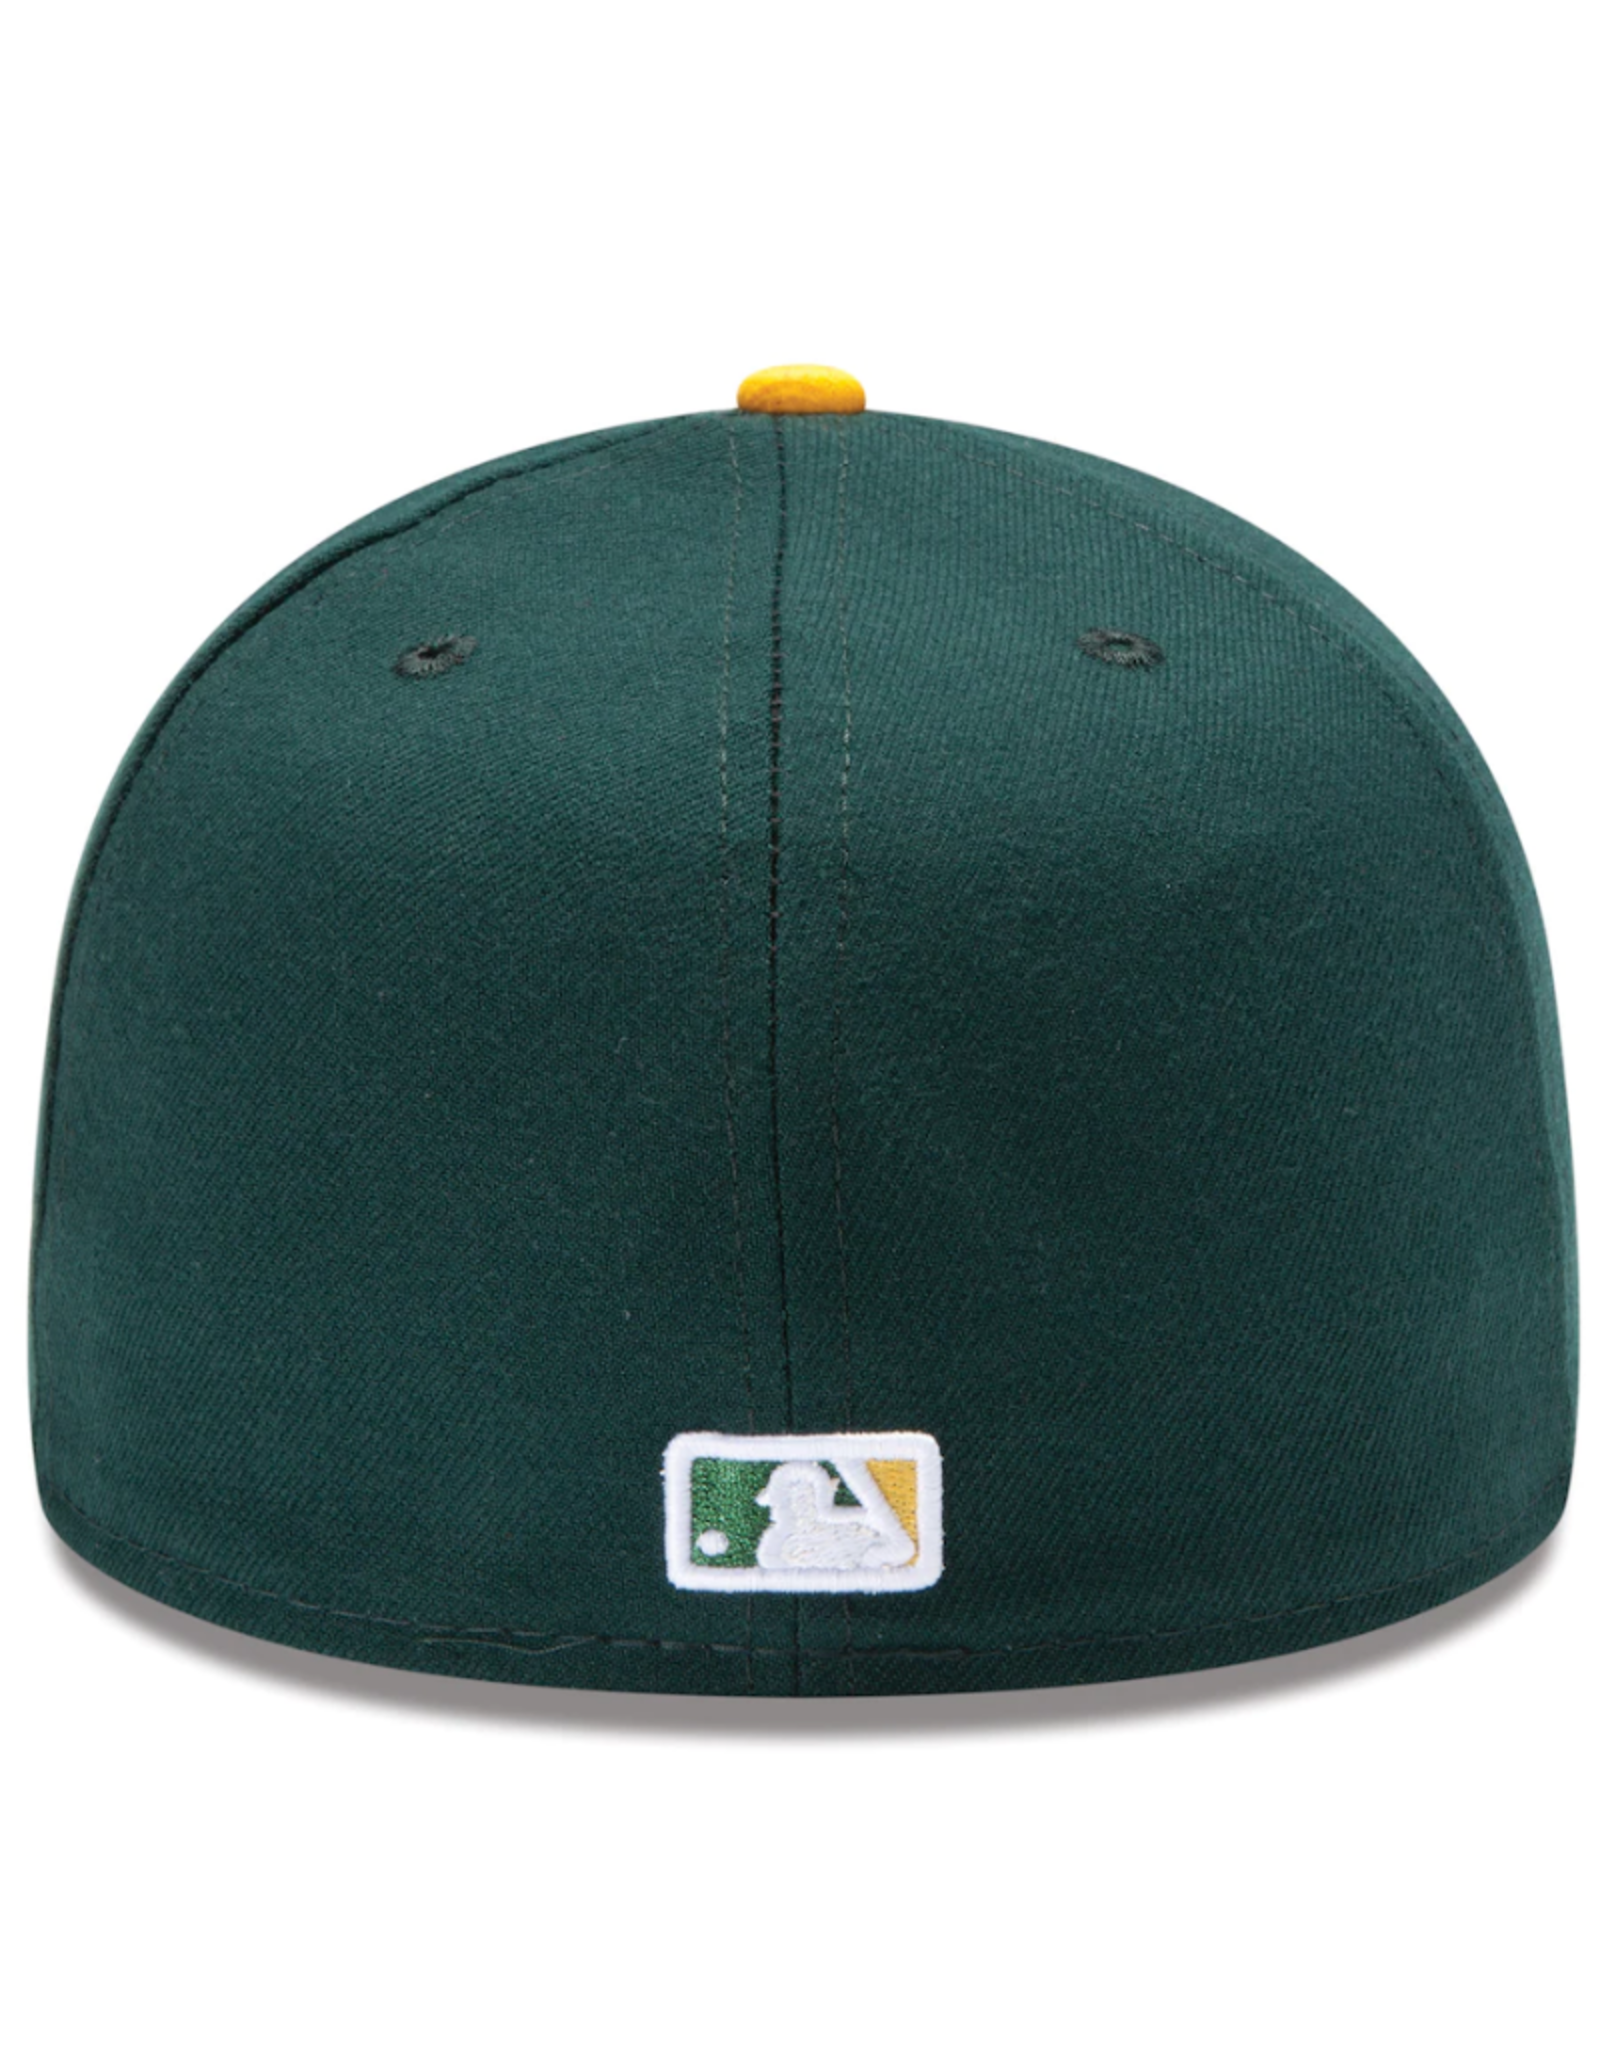 New Era On-Field Authentic 59FIFTY Home Hat Oakland Athletics Green/Yellow